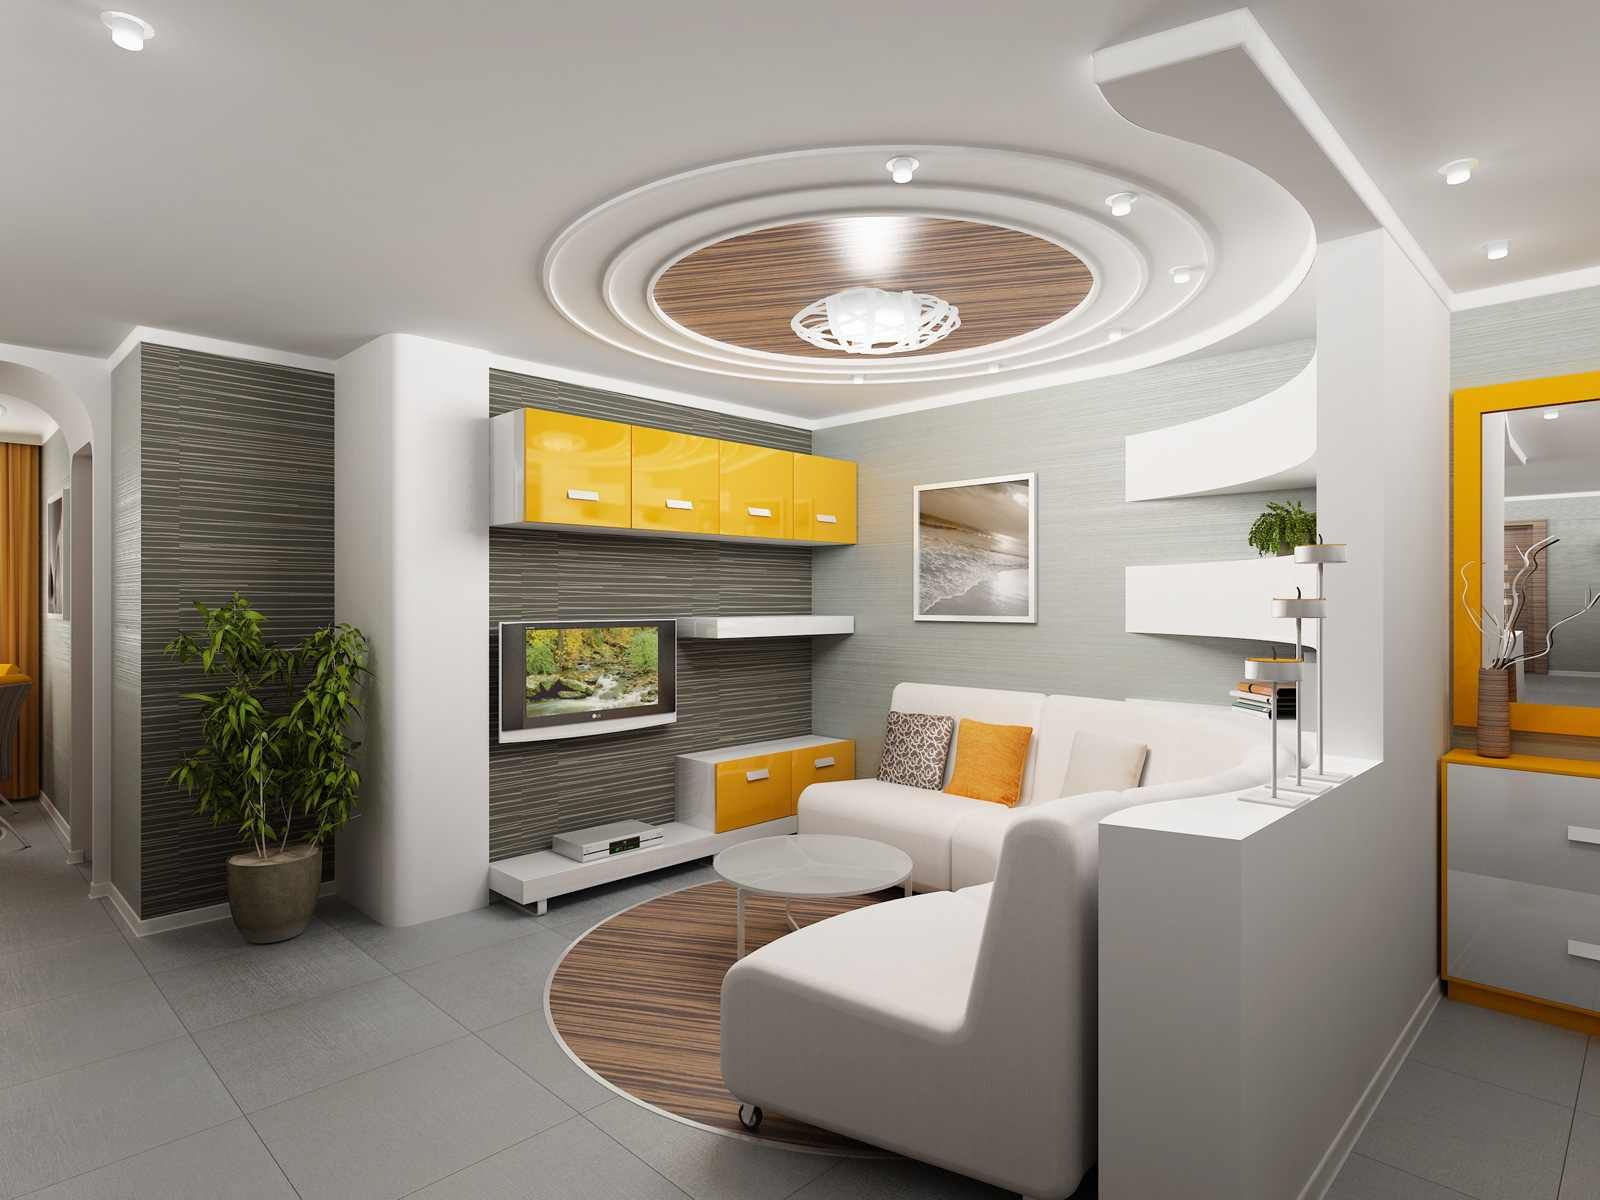 Wellliked White Fall Ceiling Designs For Teenage Master Bedroom - L shaped master bedroom designs